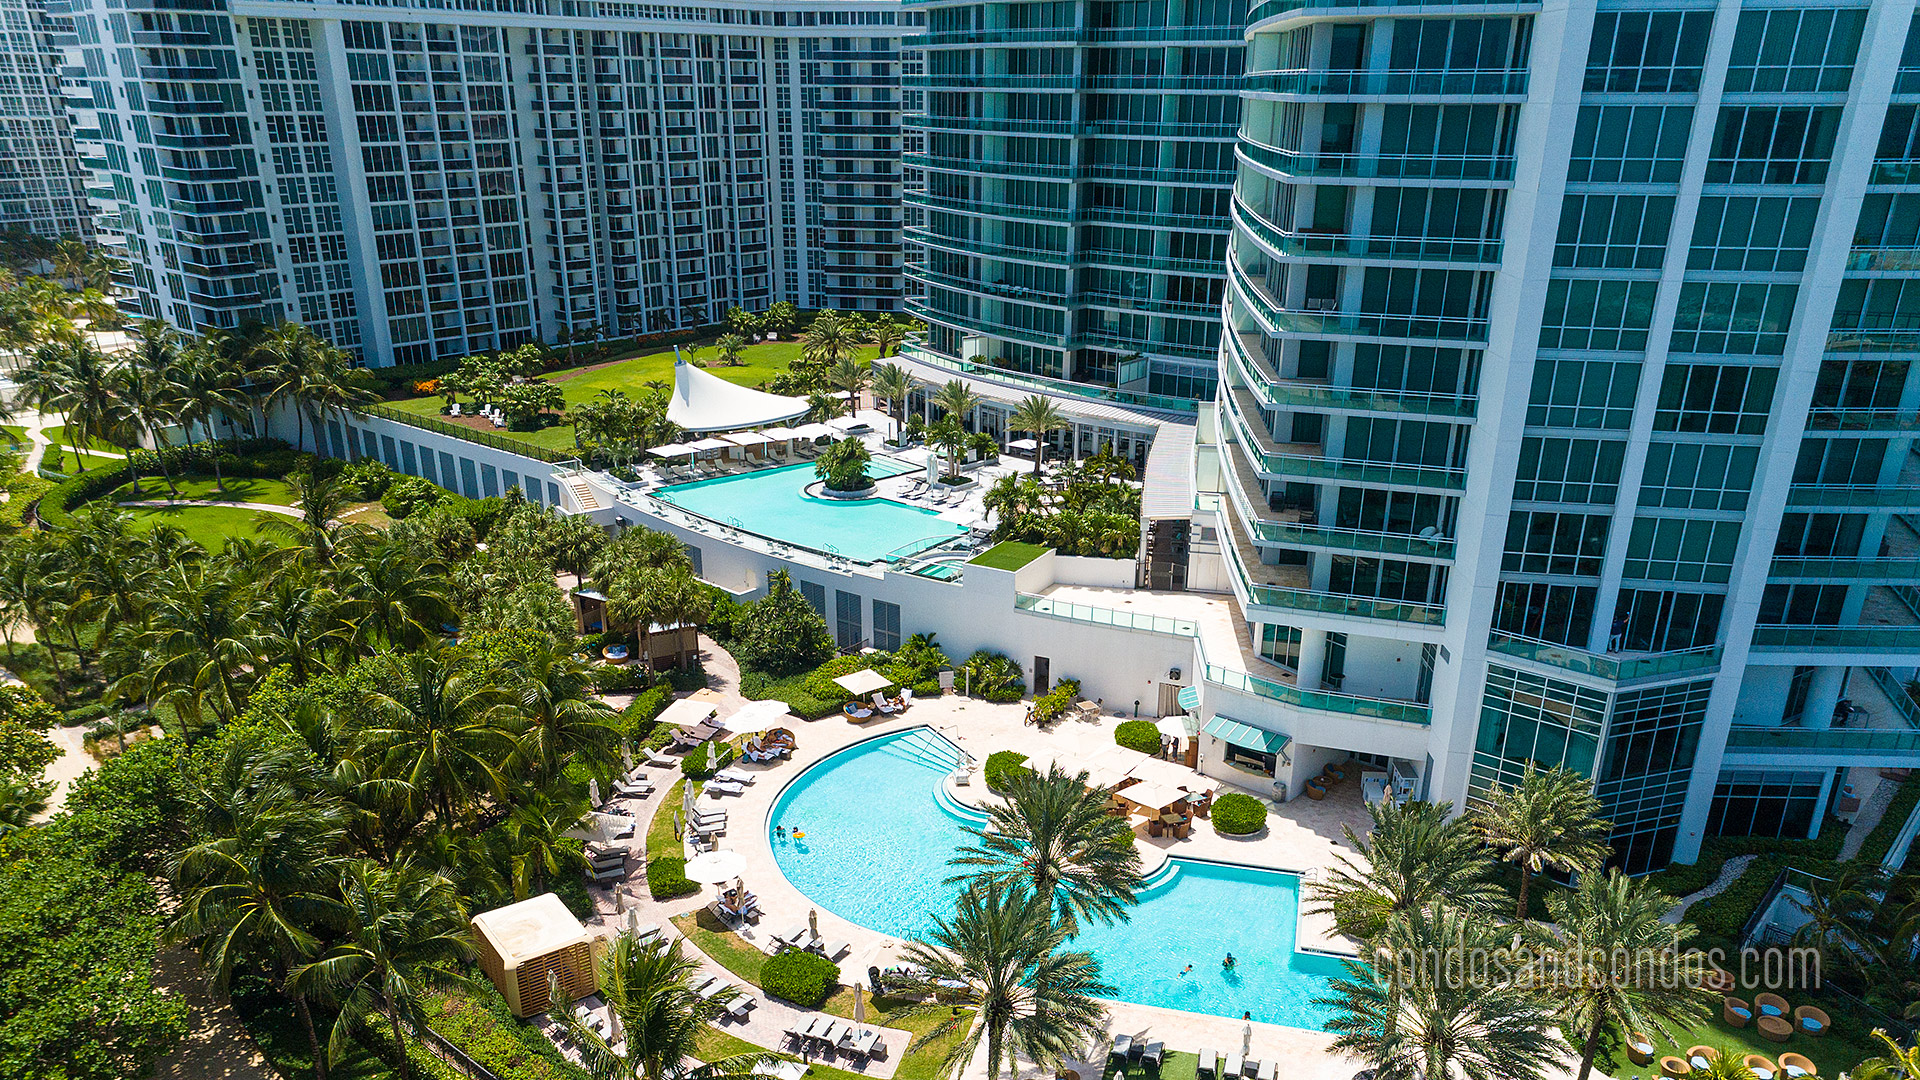 Condos for Sale in Bal Harbour